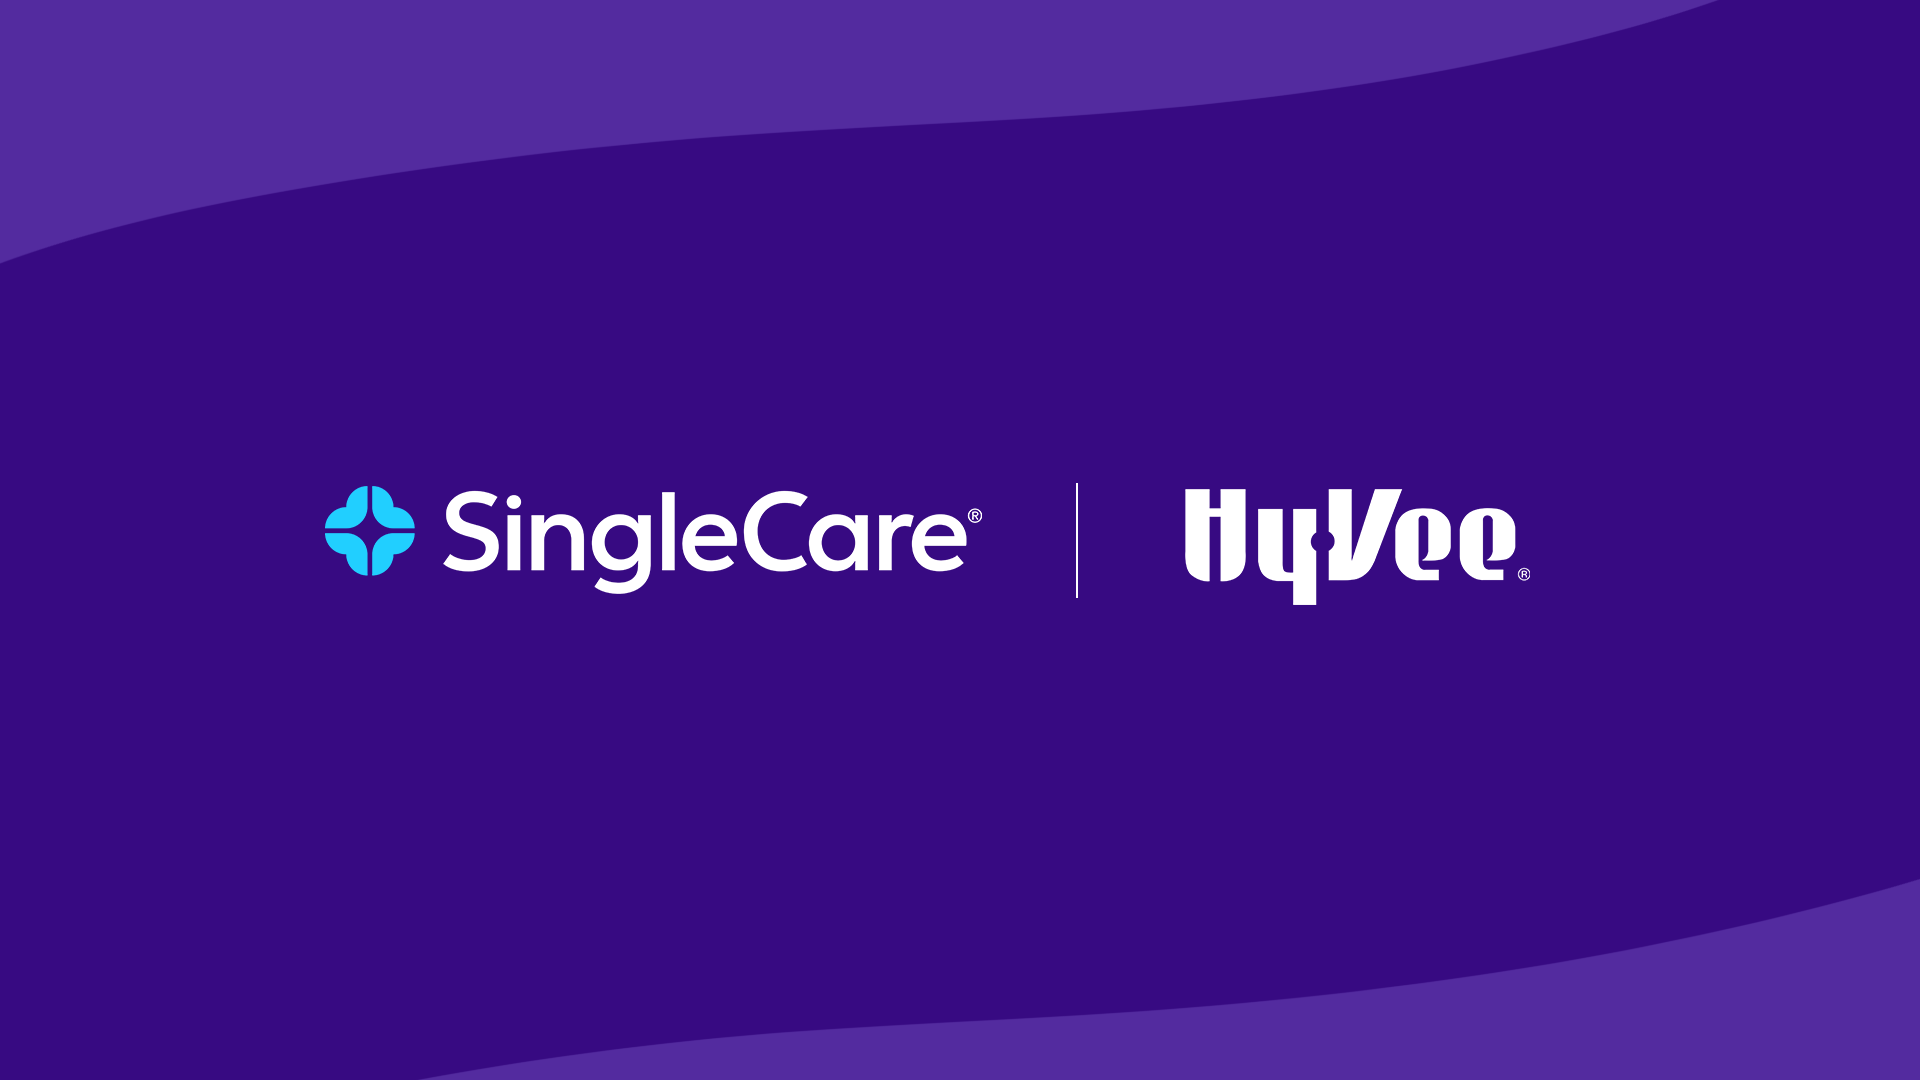 SingleCare savings are now available at Hy-Vee